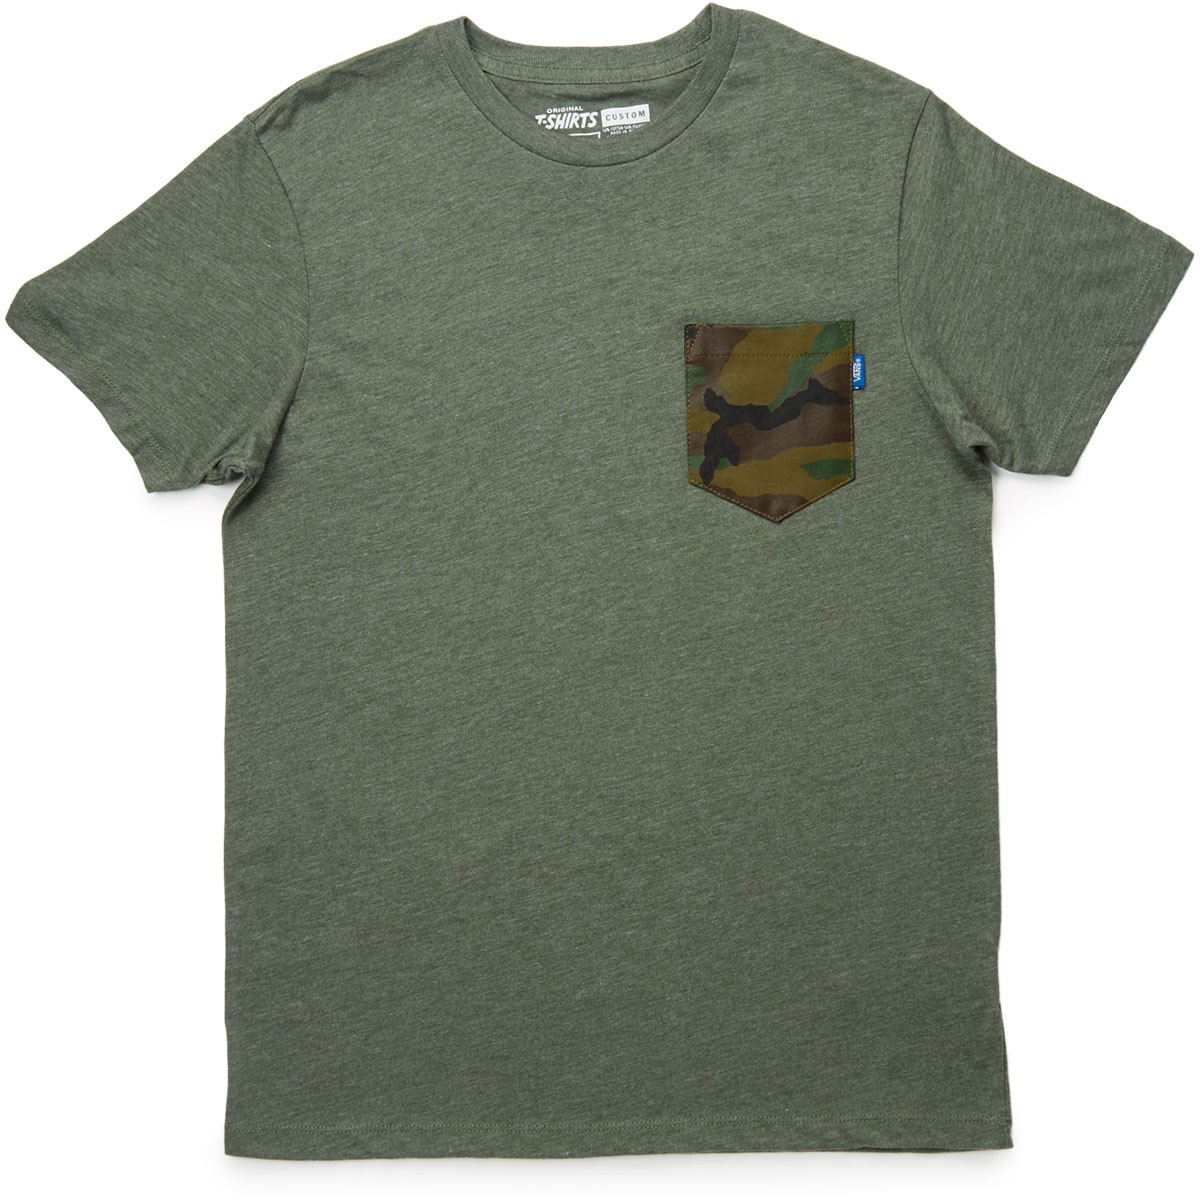 Vans Printed Pocket T-Shirt - Heather Olive/Camo